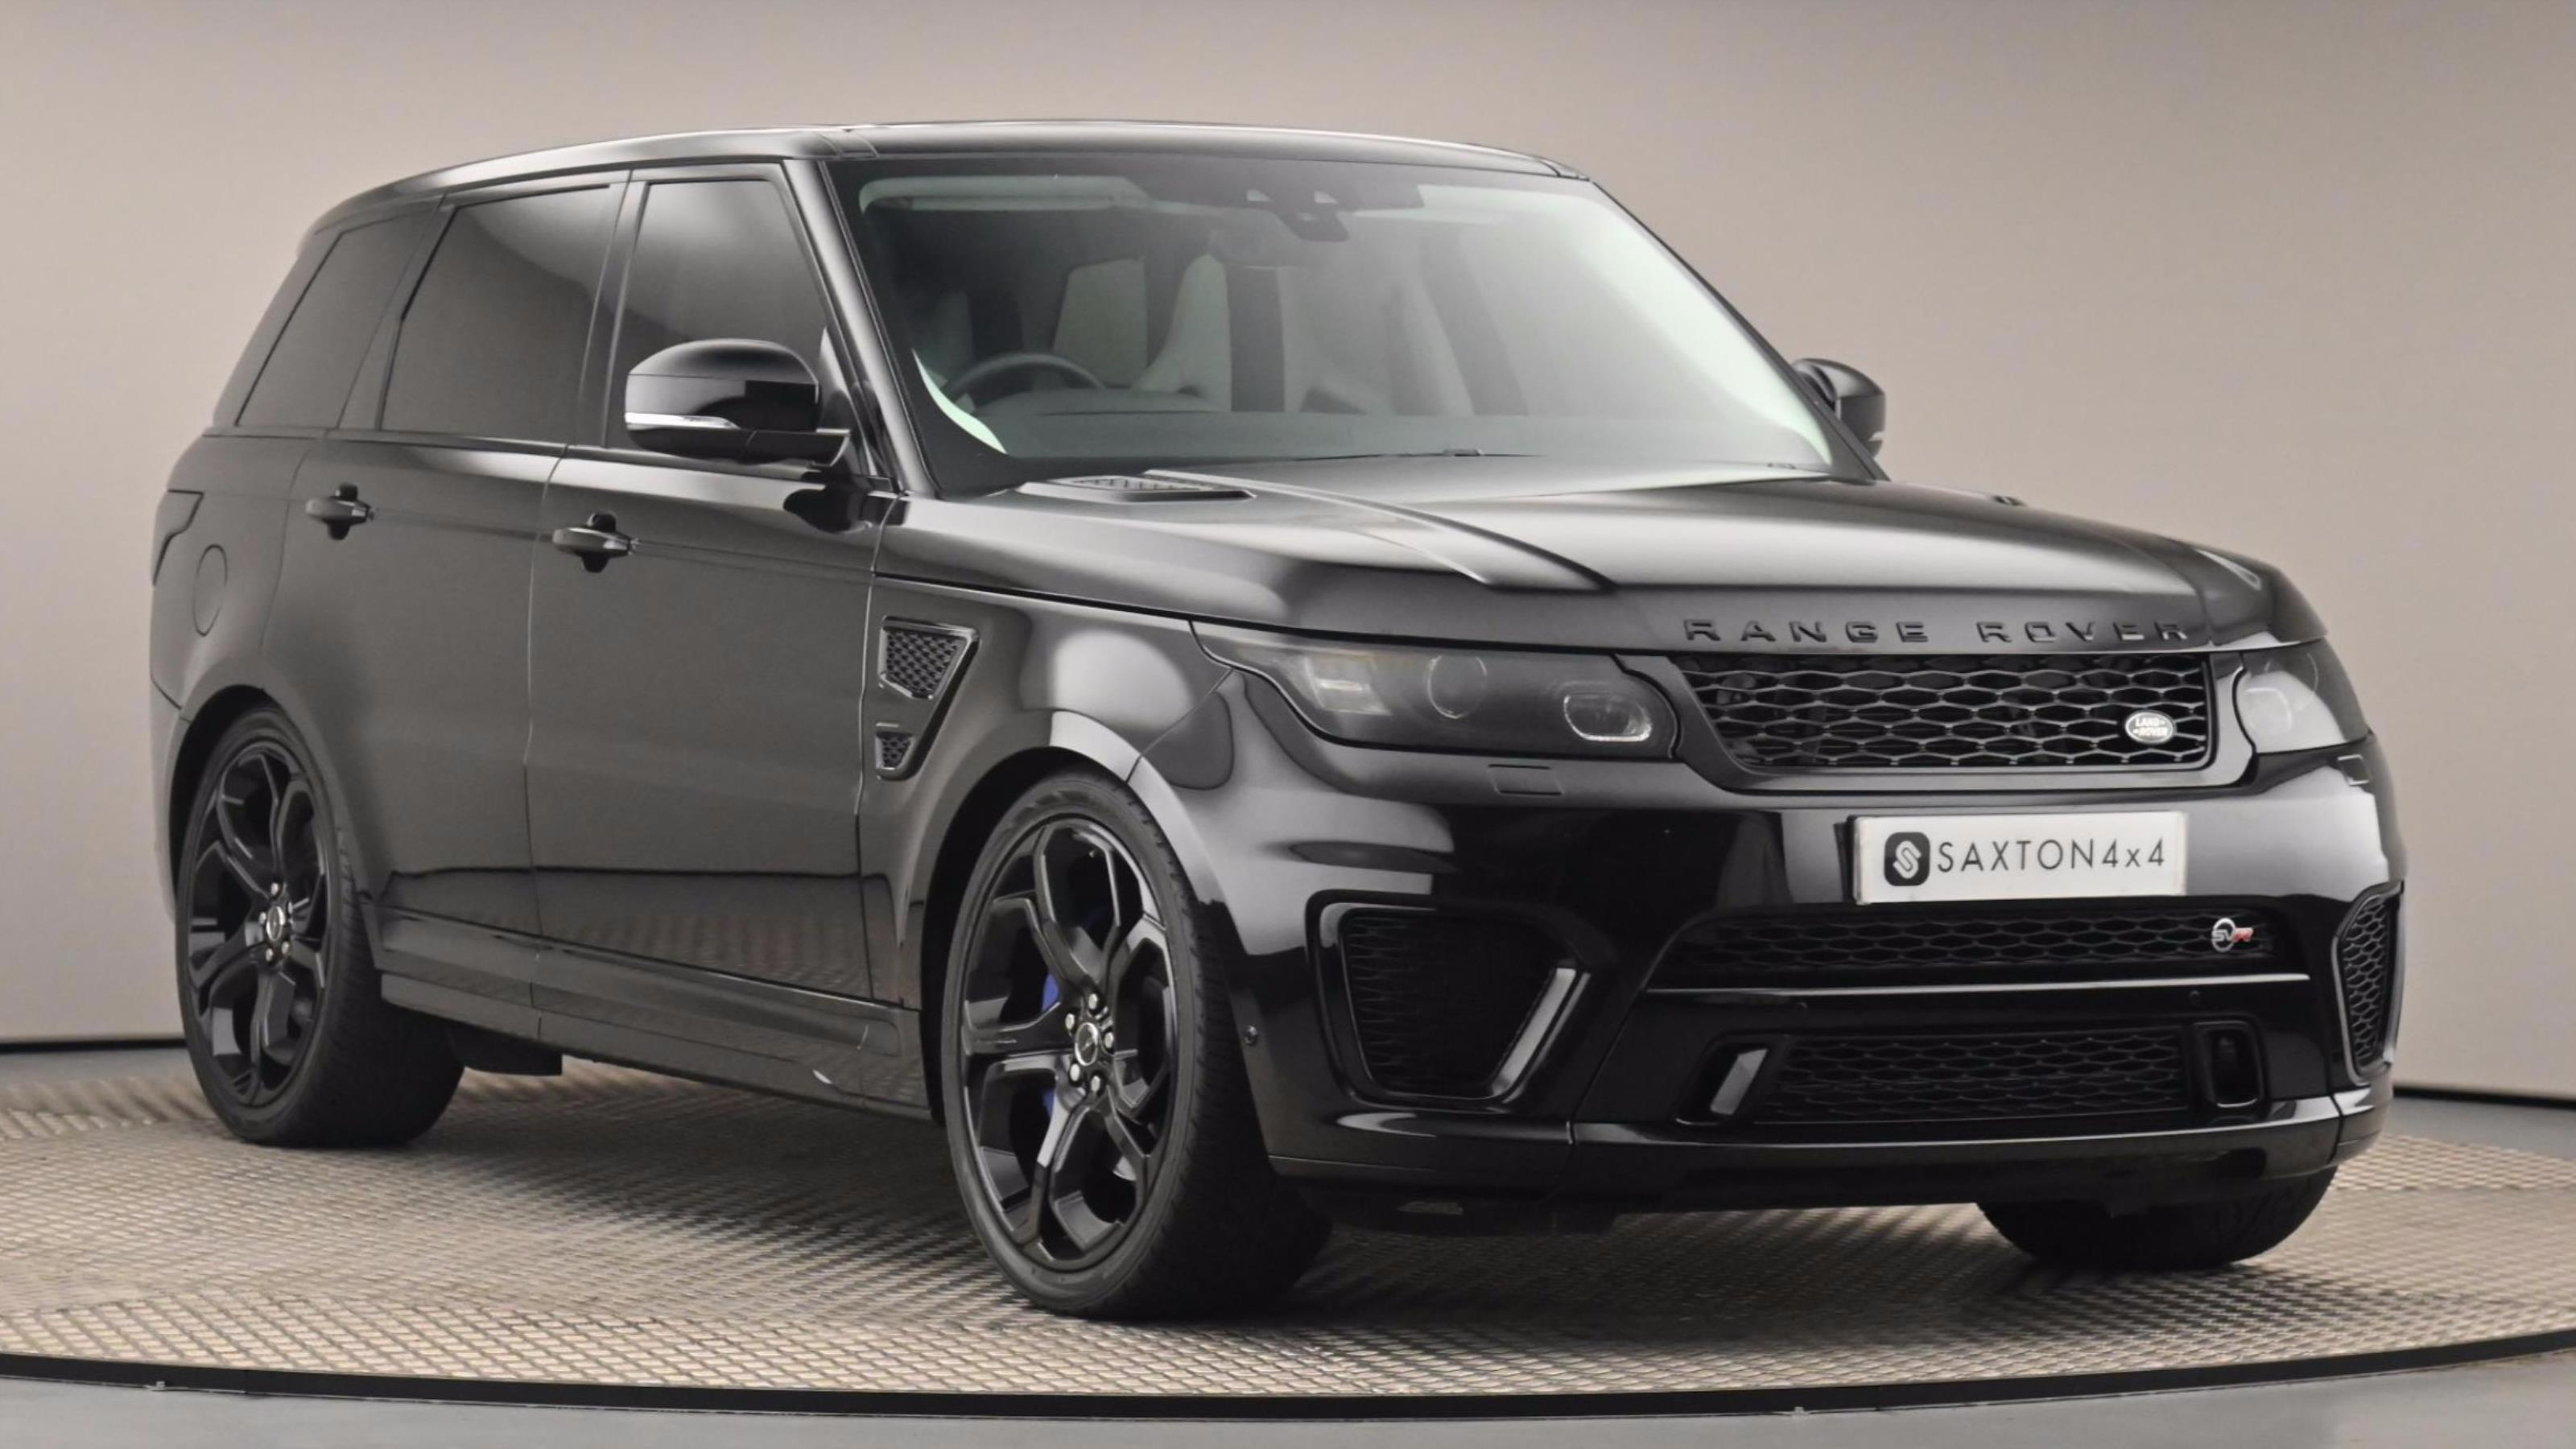 Used 2018 Land Rover Range Rover Sport SVR BLACK at Saxton4x4